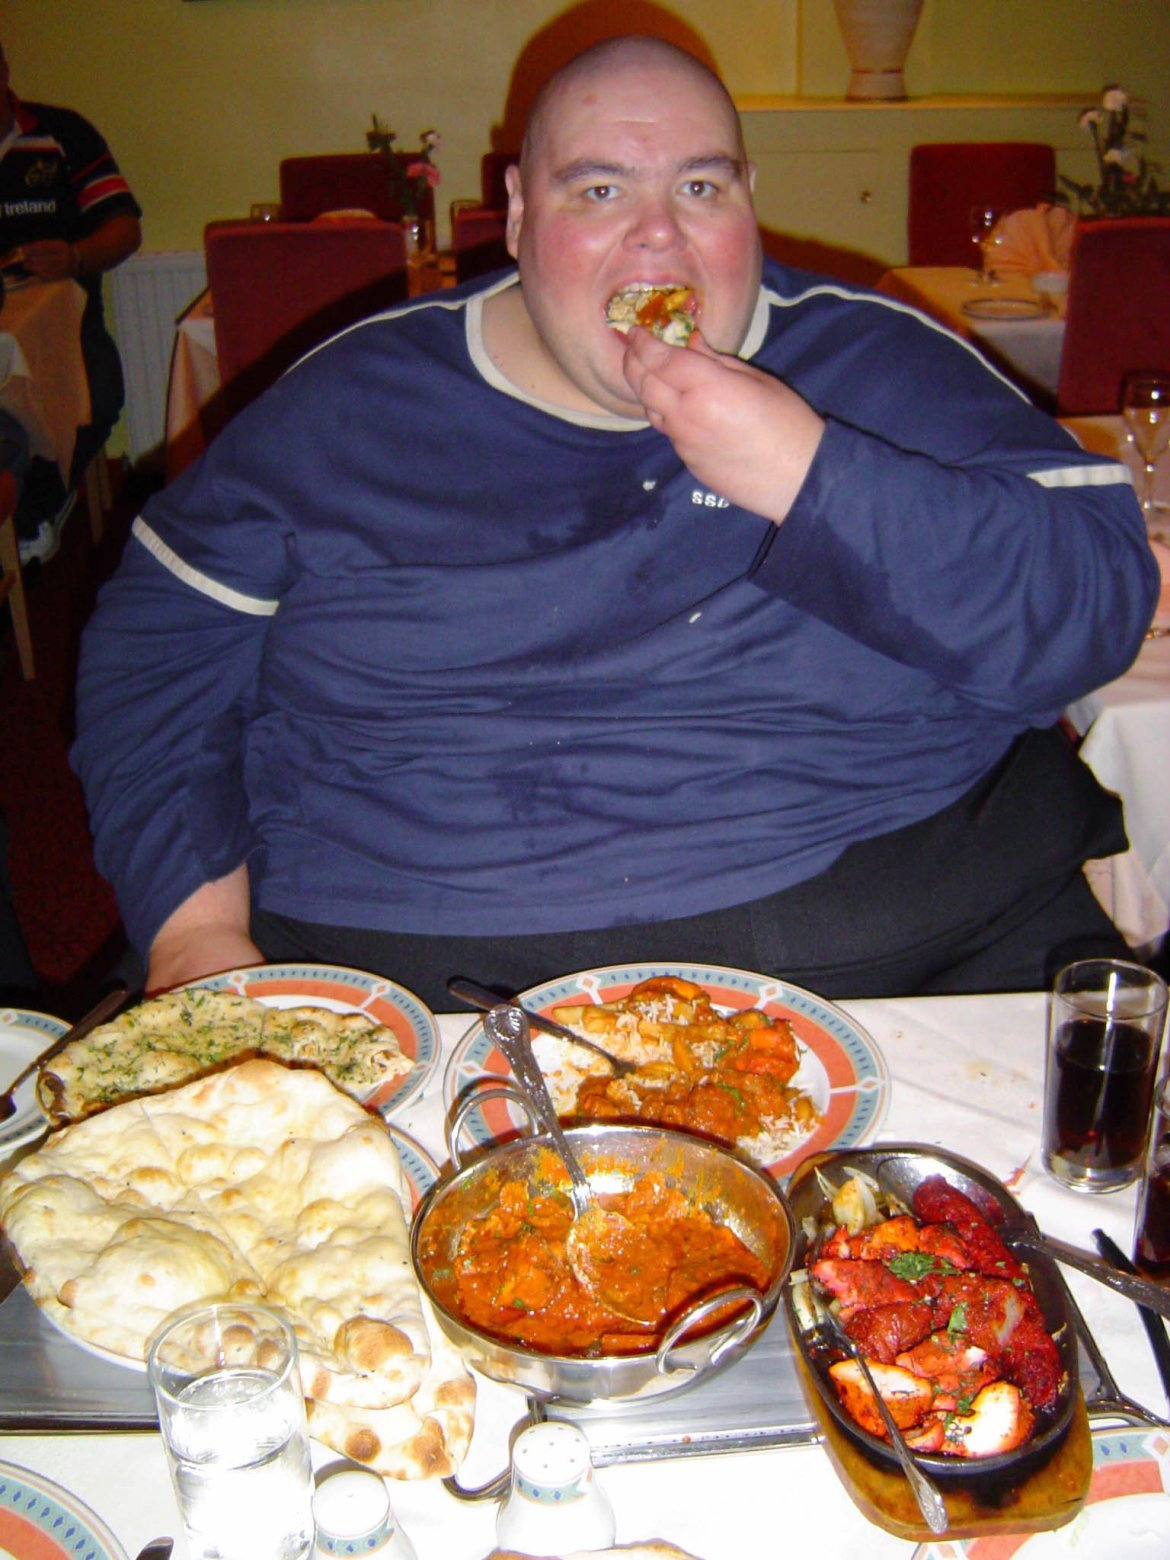 Barry once starred in Sky One documentary Inside Britain's Fattest Man